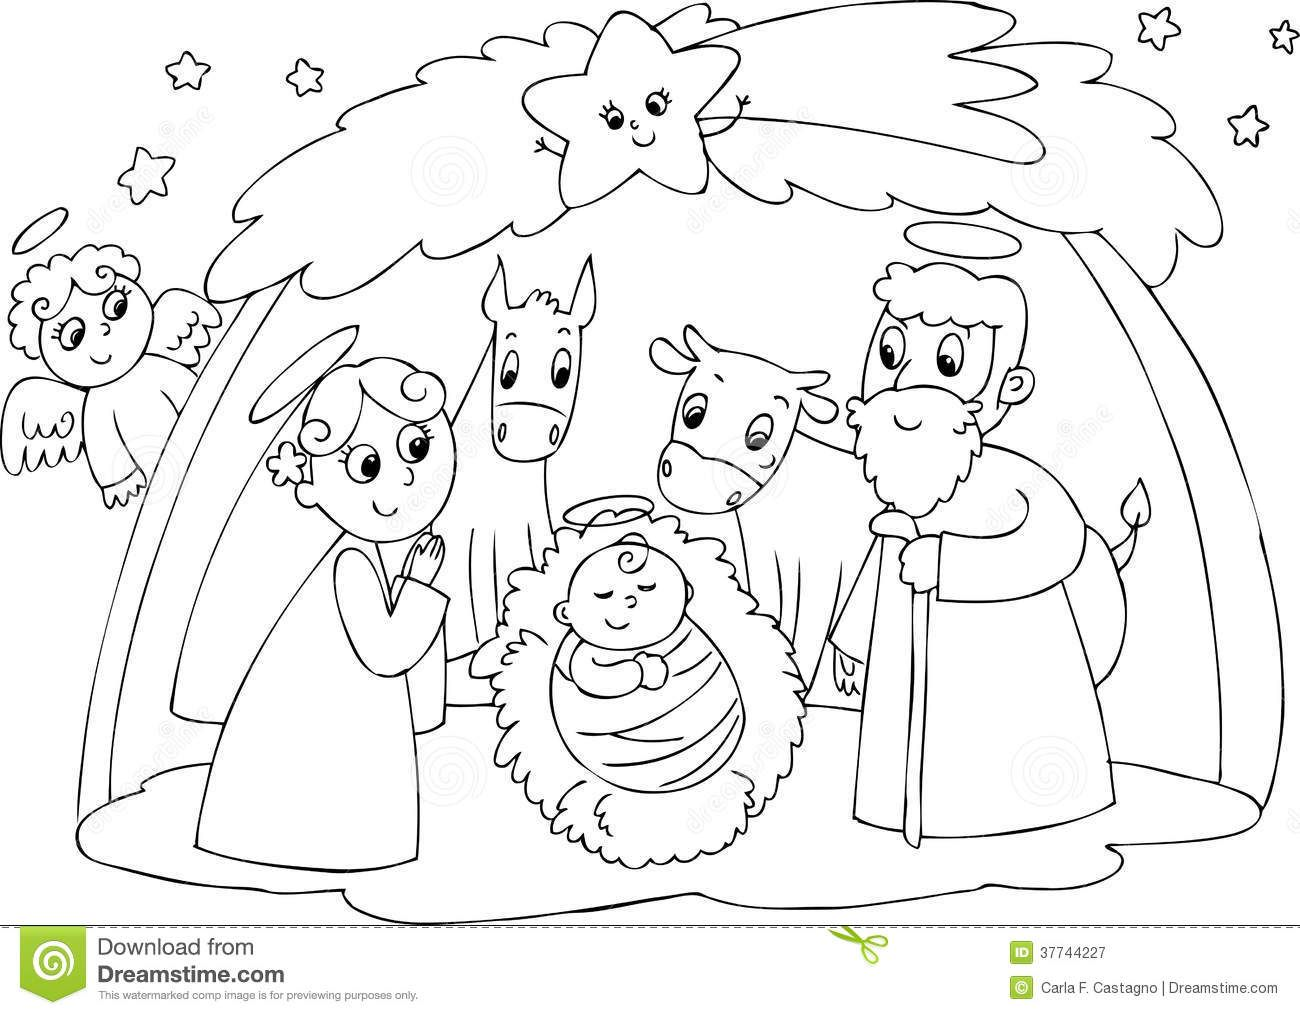 Download or print this amazing coloring page 11 Pics of